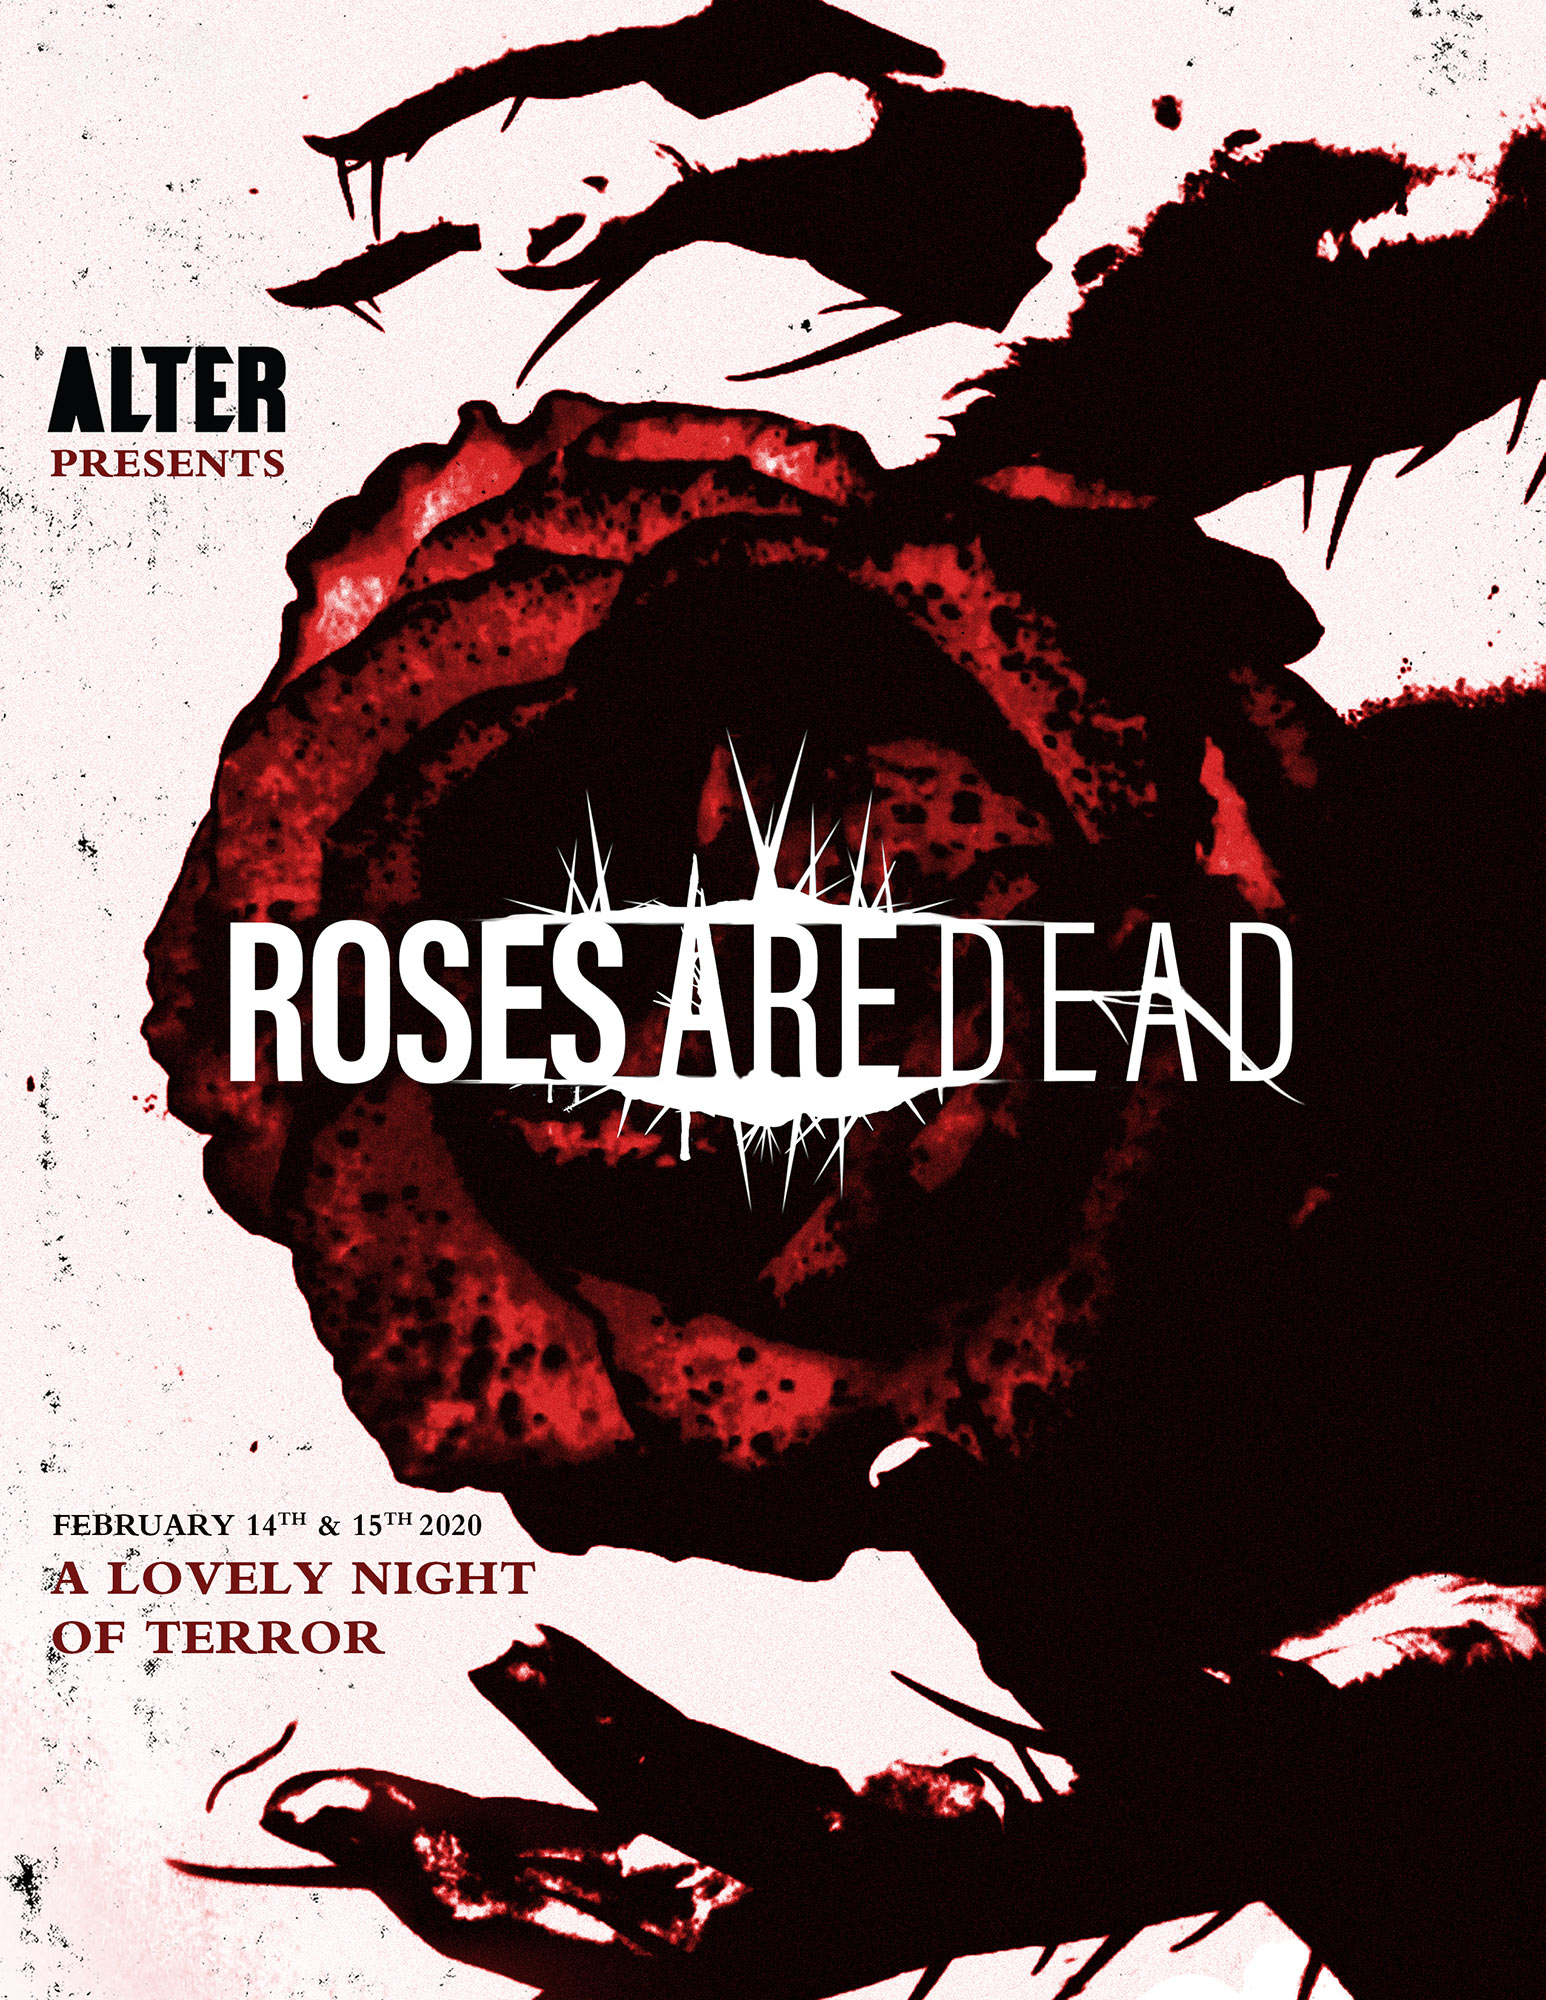 Poster for Roses Are Dead, Volume One